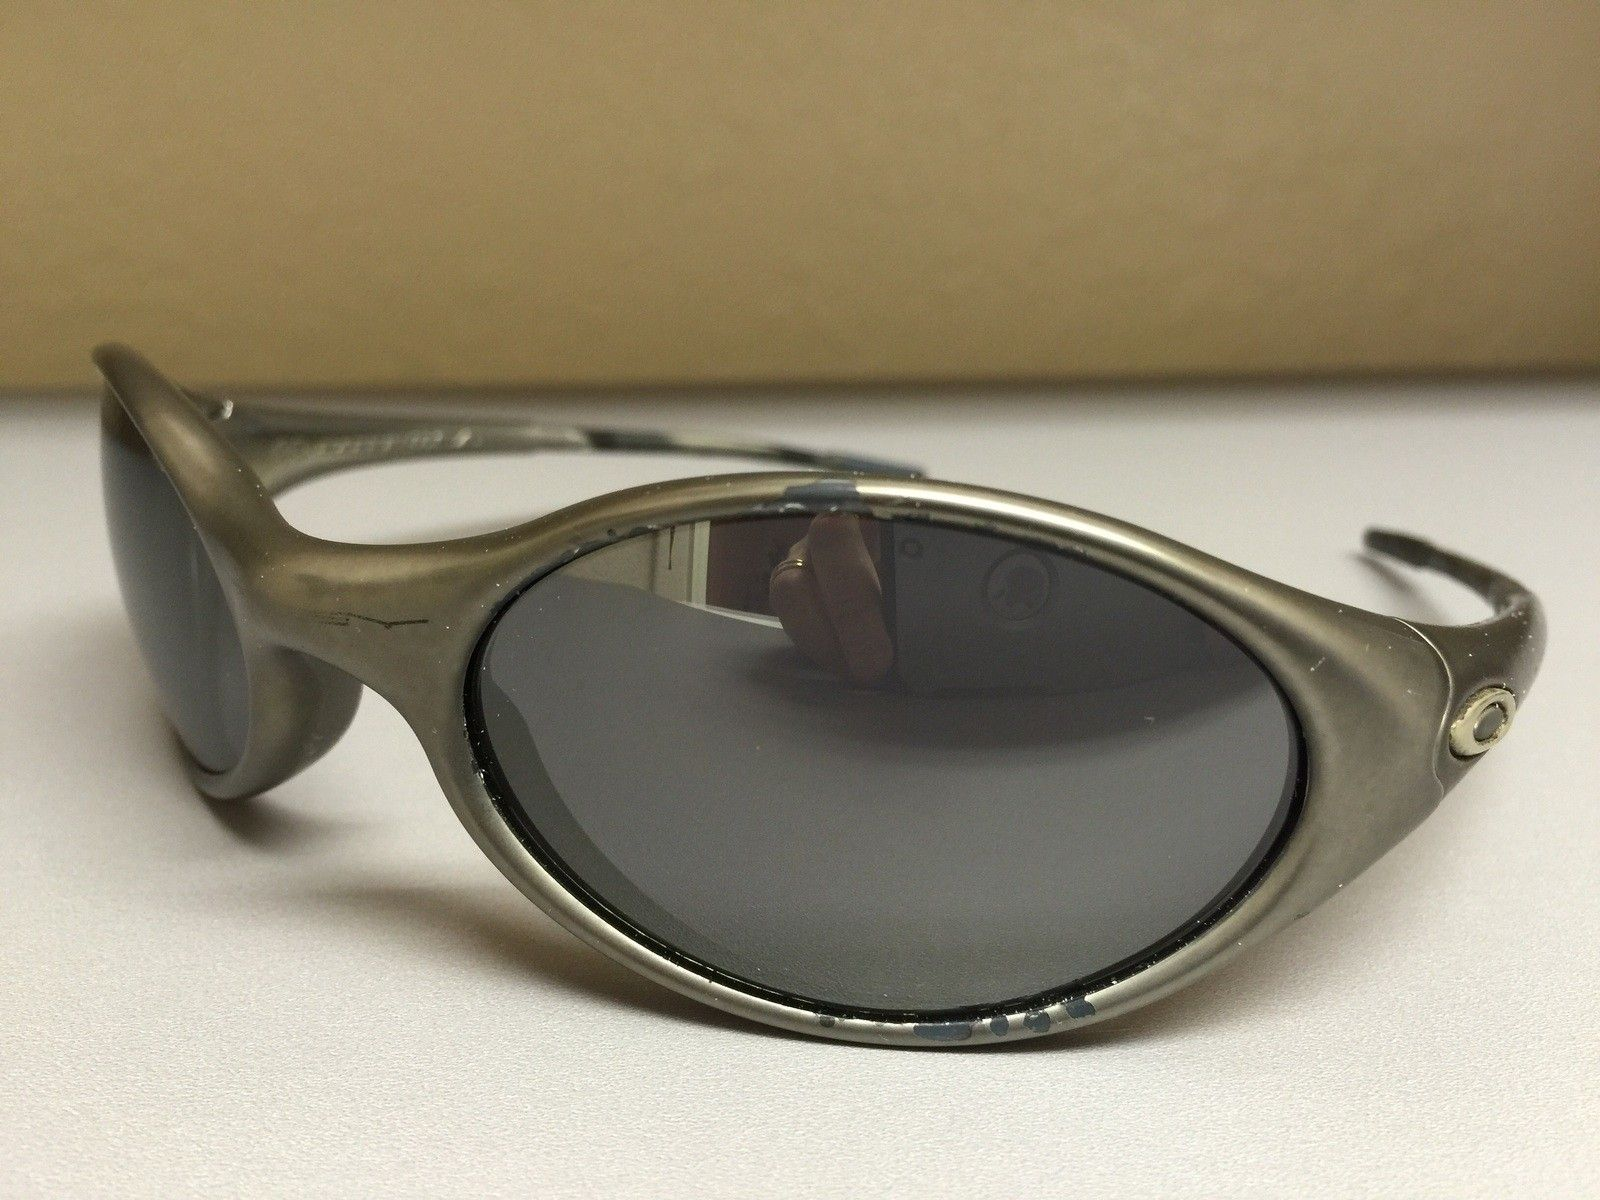 288f469aff5 Spray Paint Oakley Sunglasses. Jun20. Elderly friends. Sunglasses Custom  Painted Oakleys « Heritage Malta